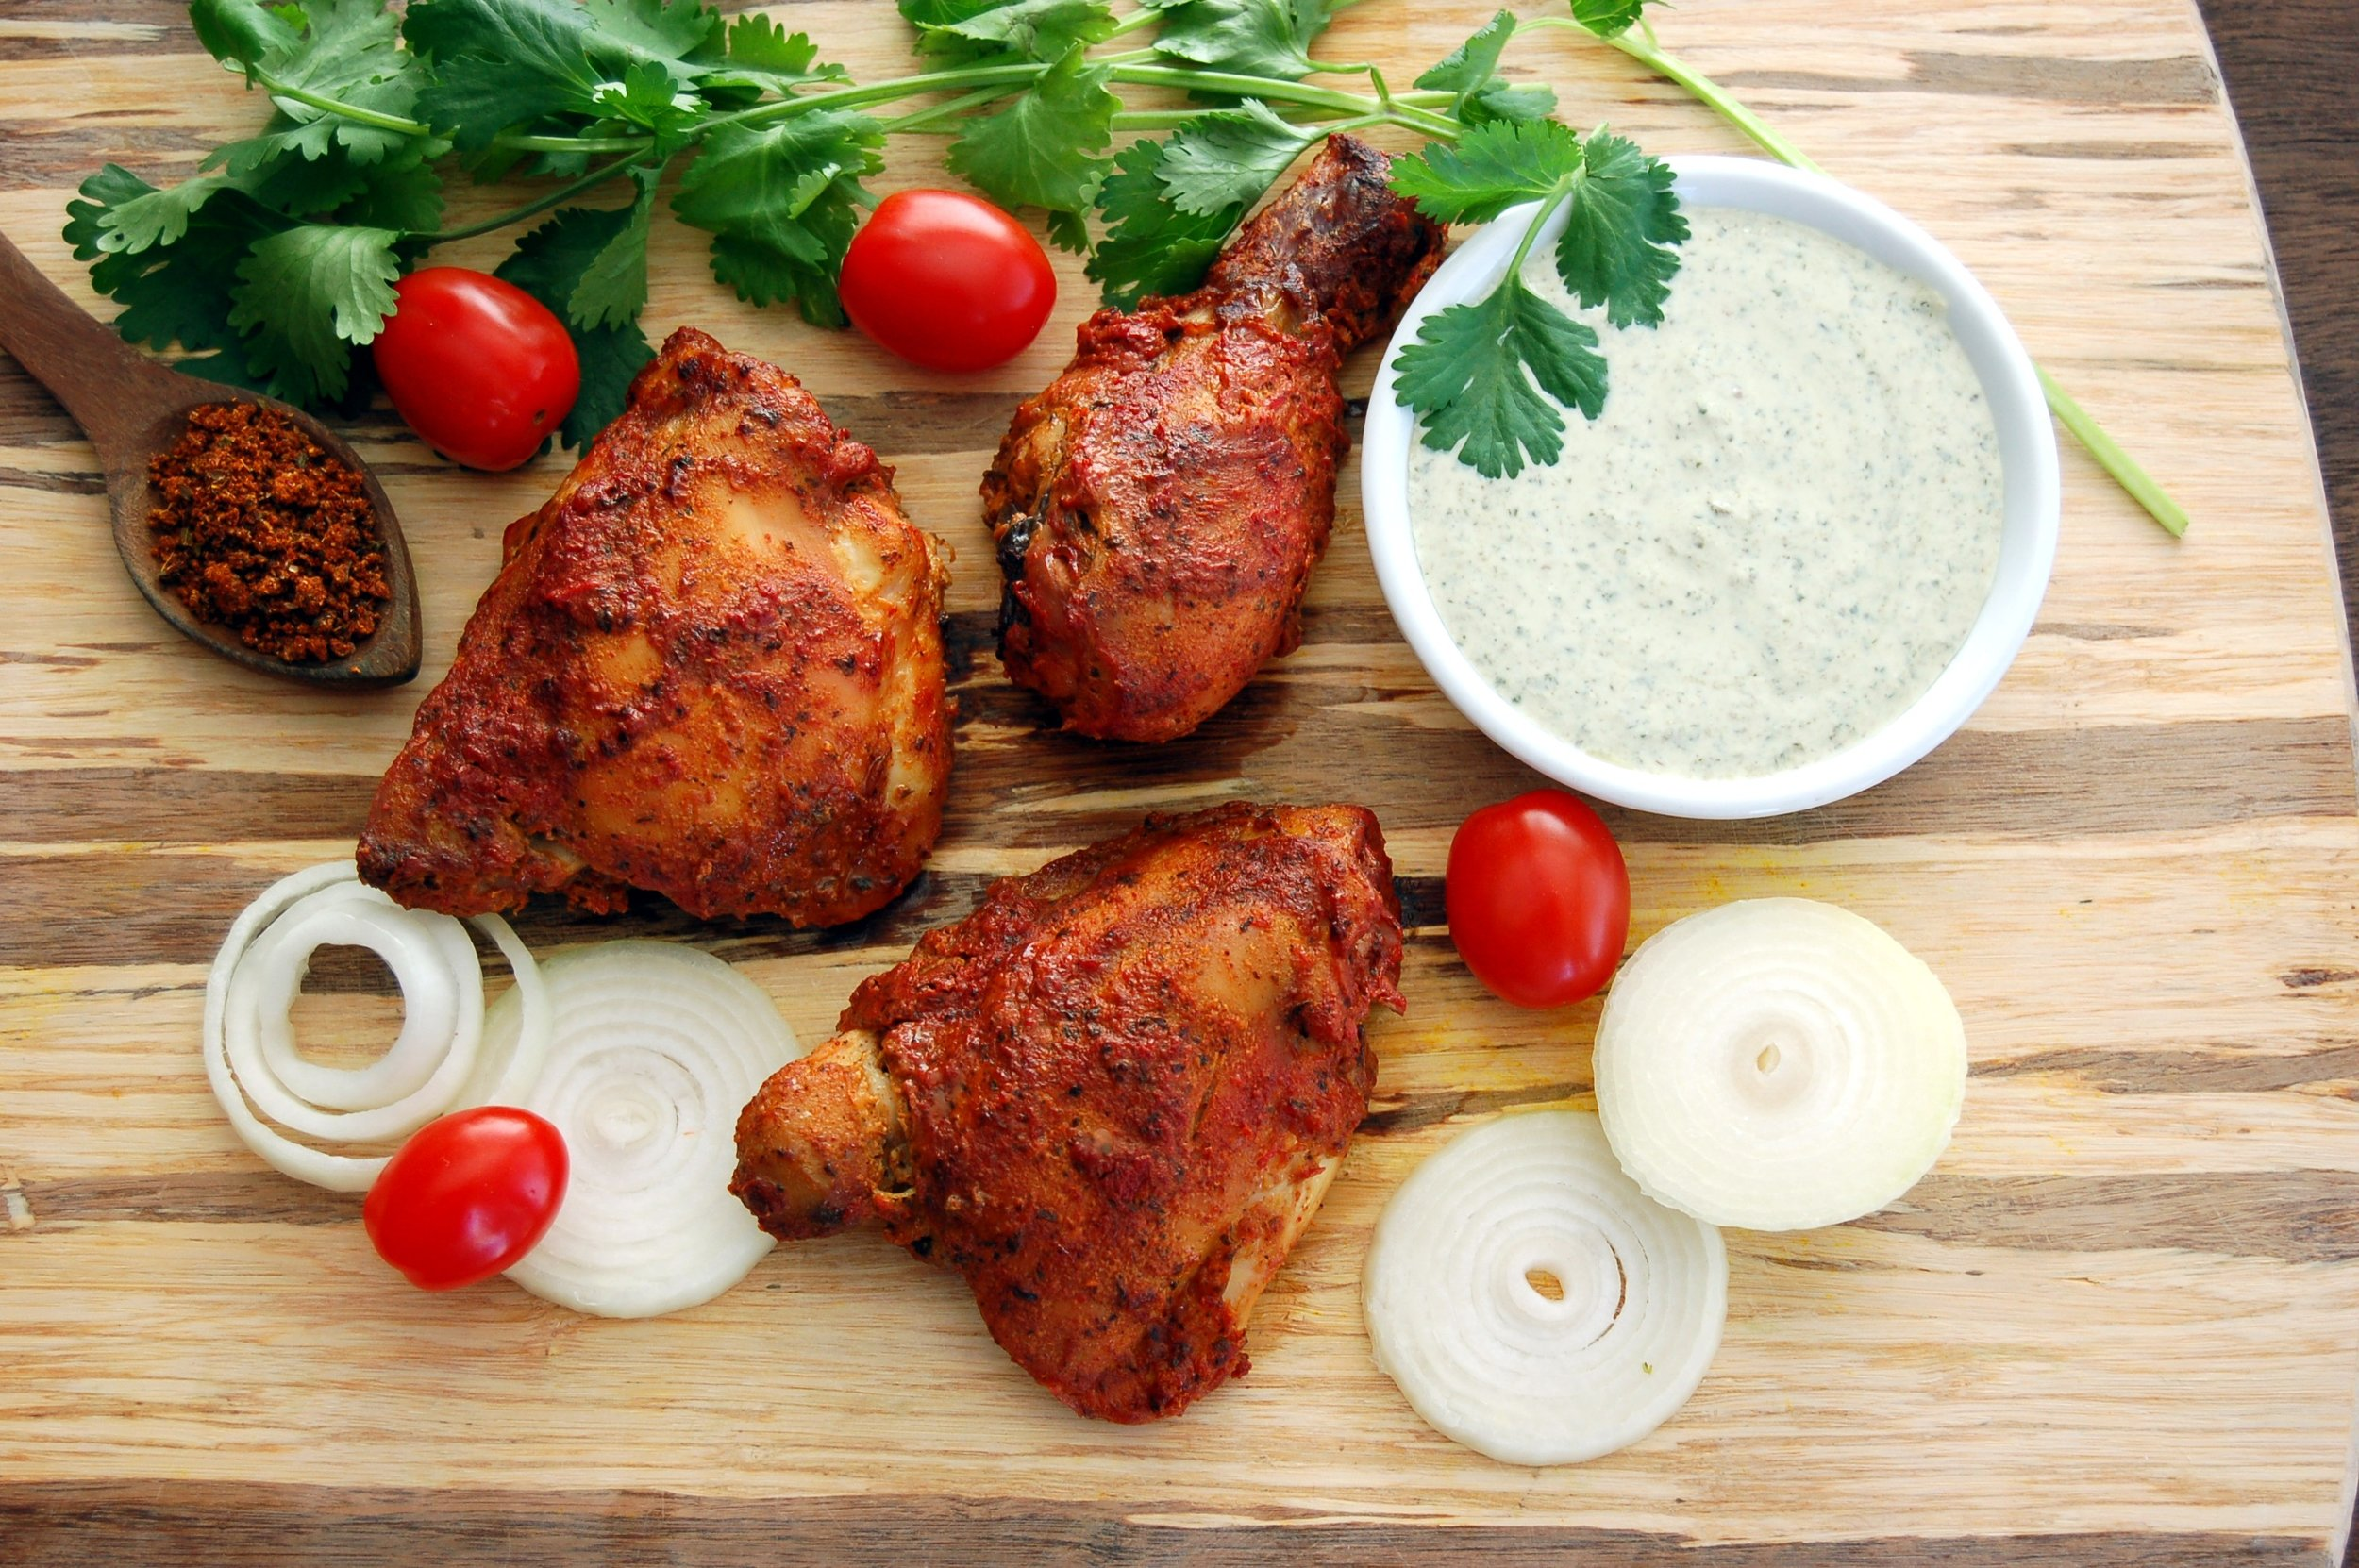 SUCCULENT TANDOORI CHICKEN - {Made with Arvinda's Tandoori Masala}Use Arvinda's Tandoori Masala to make the ever-popular Tandoori Chicken. Bake in the oven or cook on the barbecue grill (even better!) and serve with naan and raita for a delicious, healthy meal. Vegetarian Alternative: Try tandoori paneer ... it's a great match!